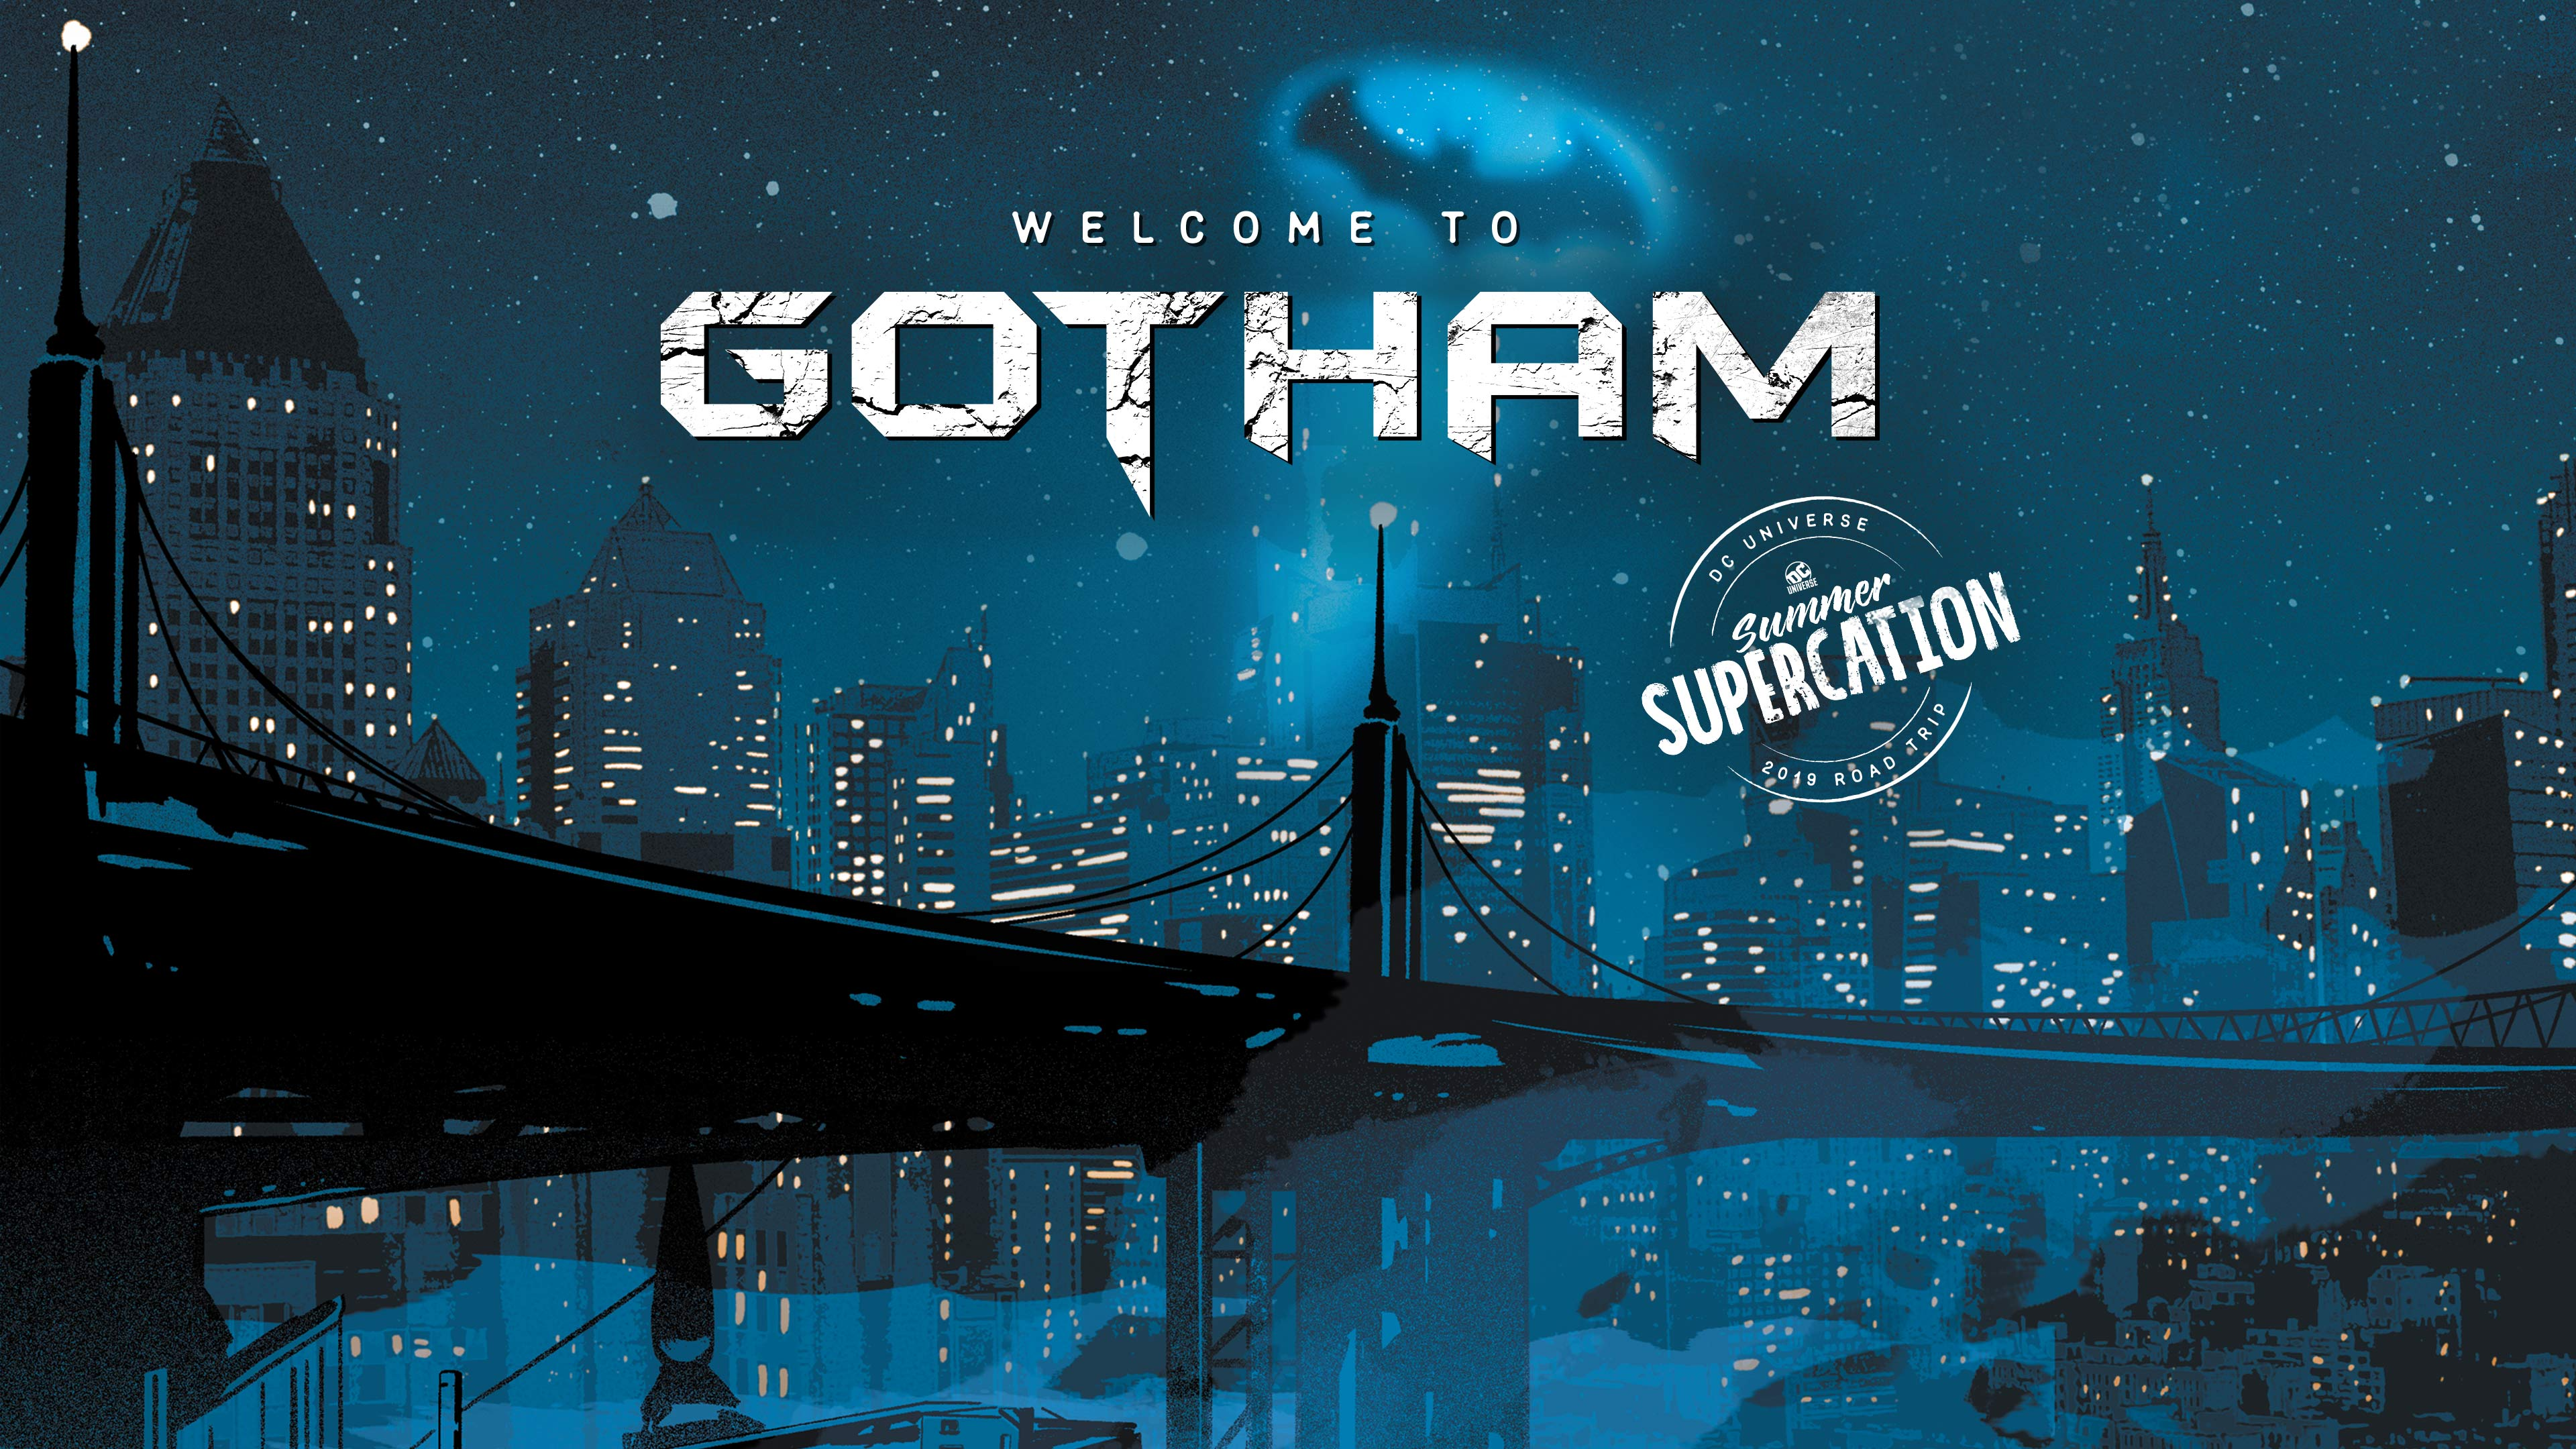 summer-supercation-gotham-hero-c-v1.jpg